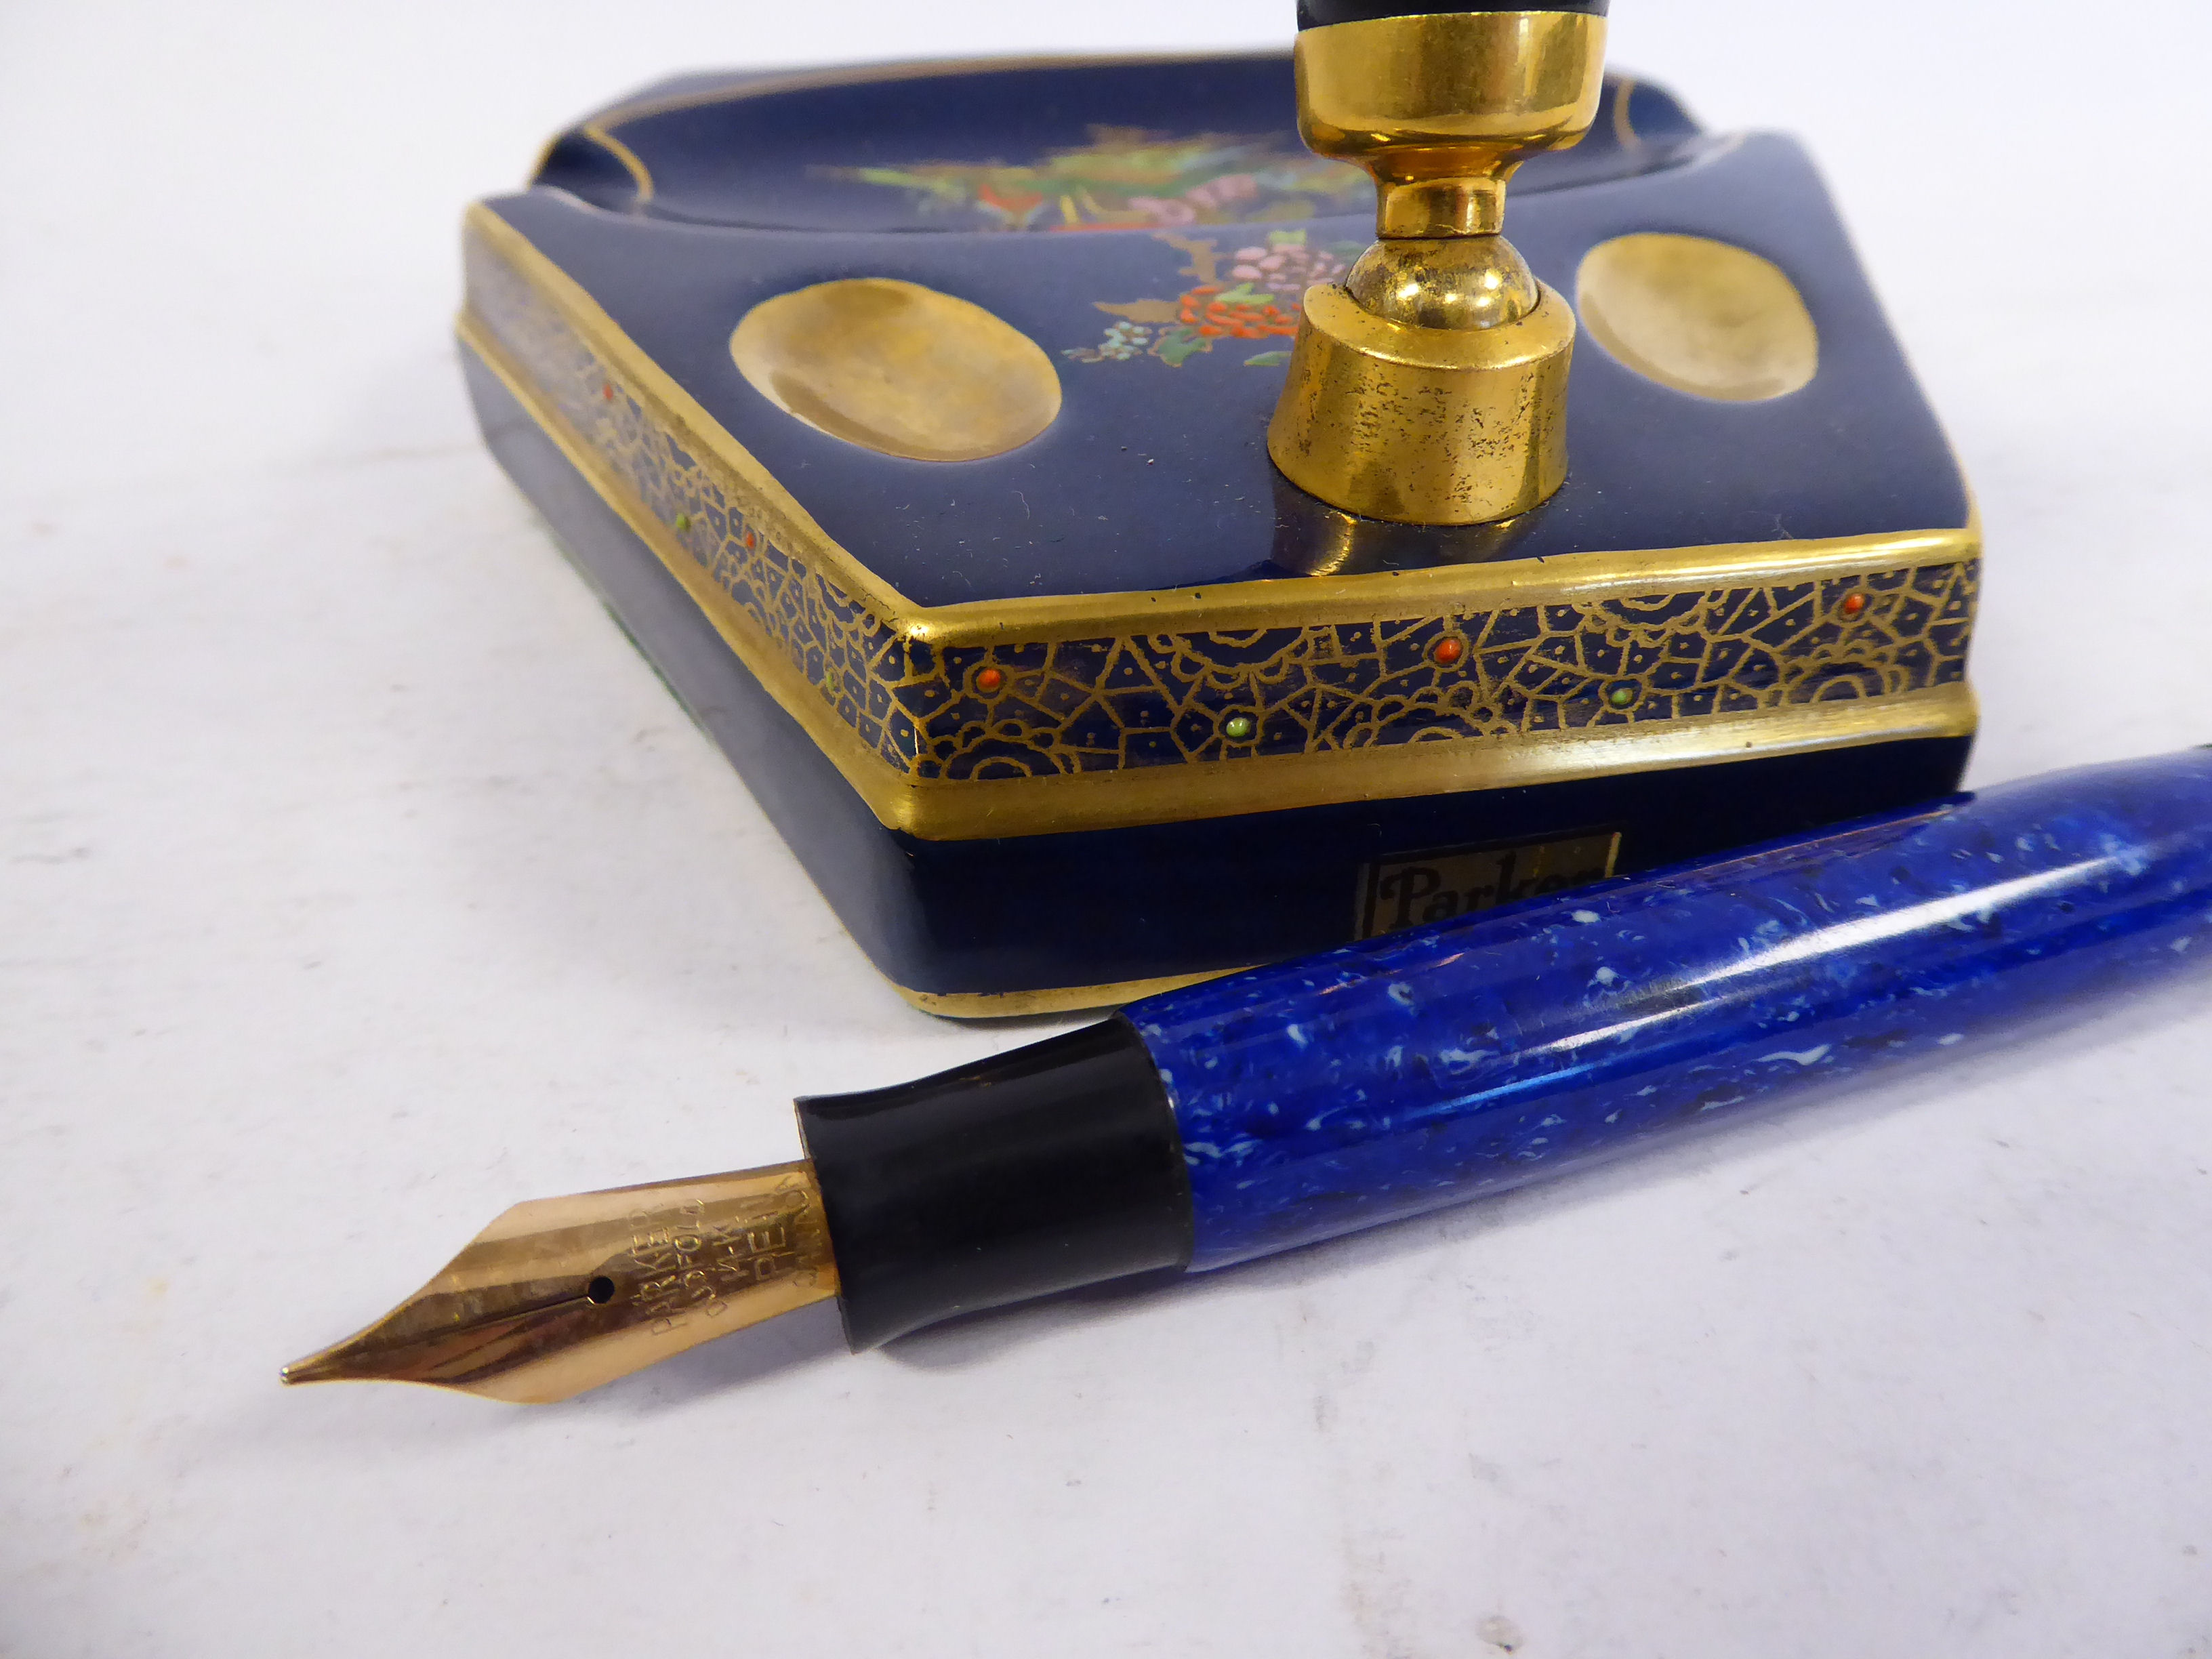 Lot 50 - A Parker Duofold fountain pen, in a tapered,